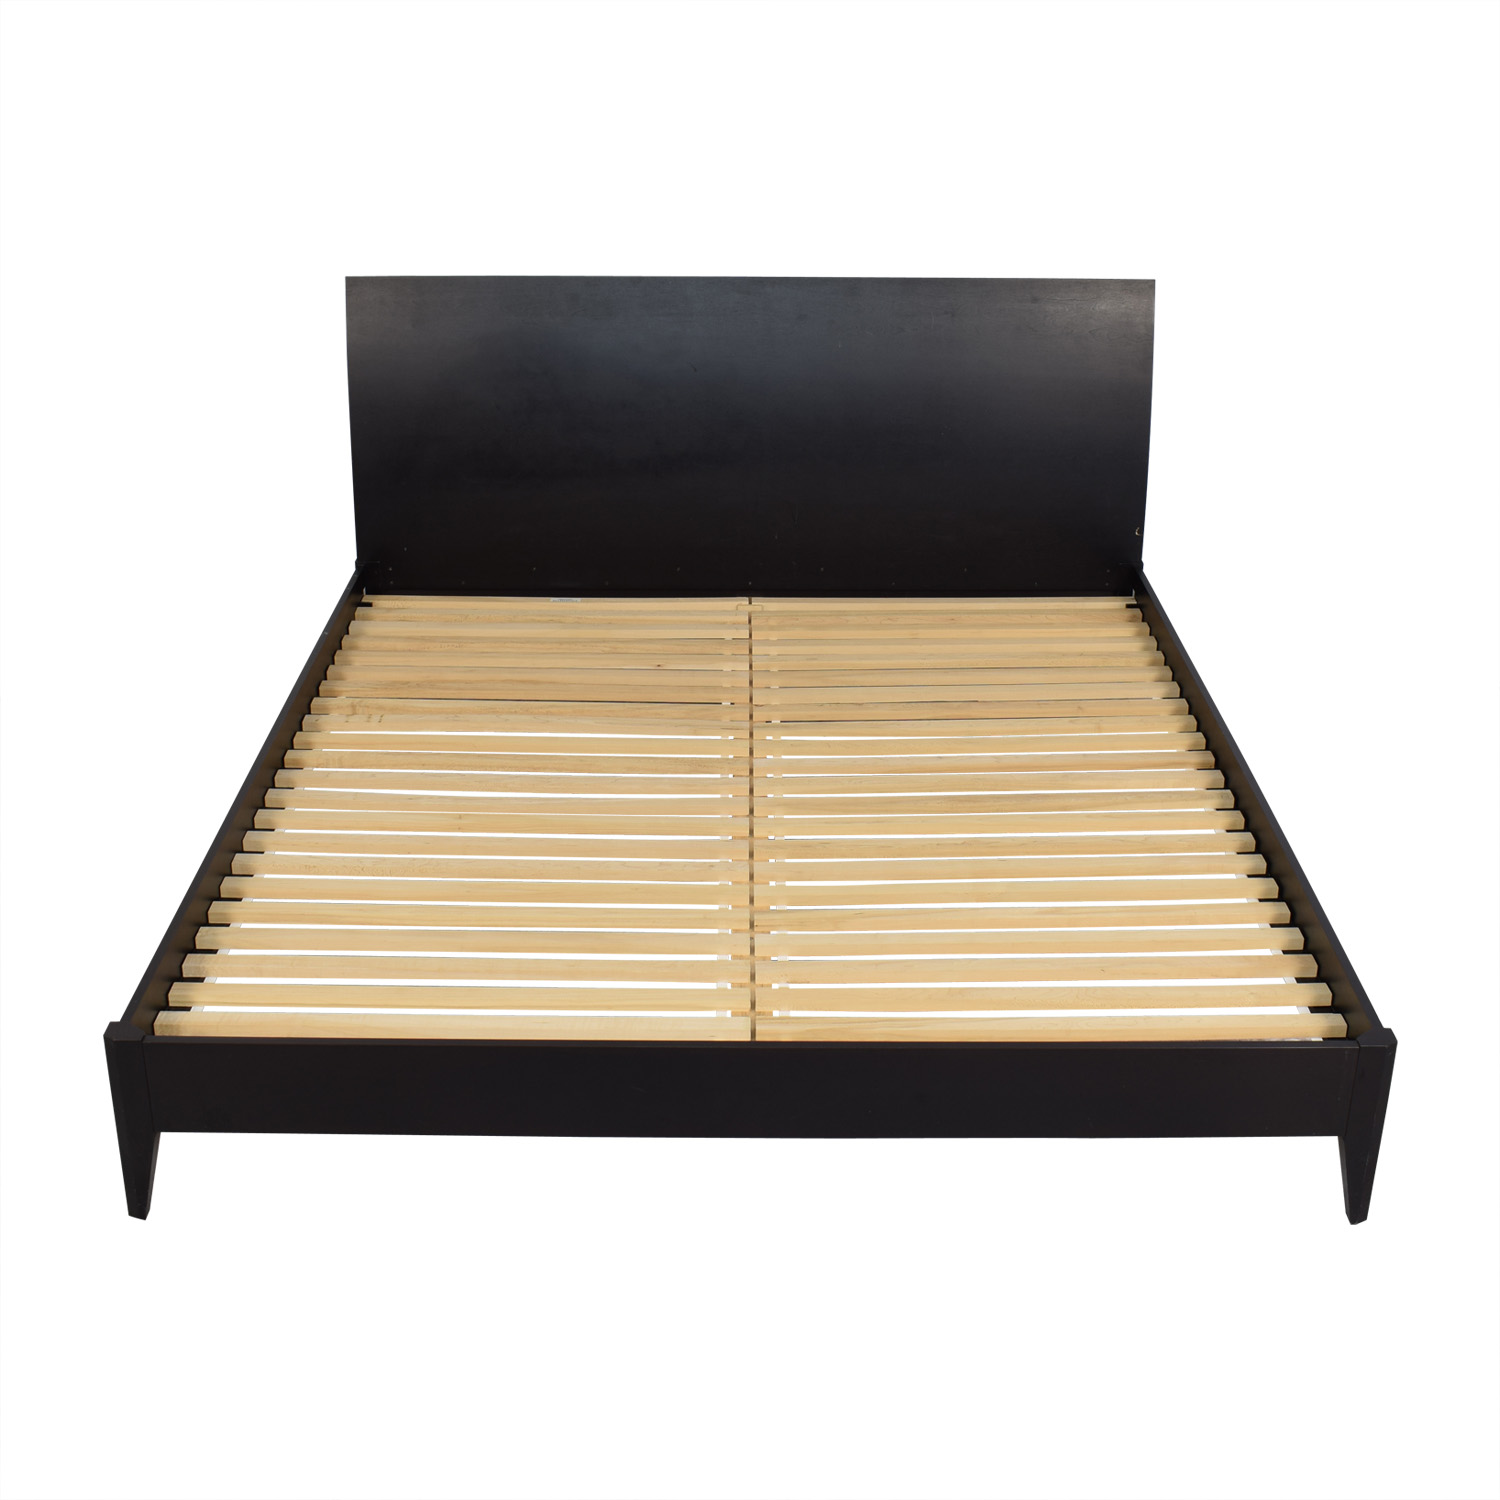 Baronet Baronet Wood King Bed Frame Beds